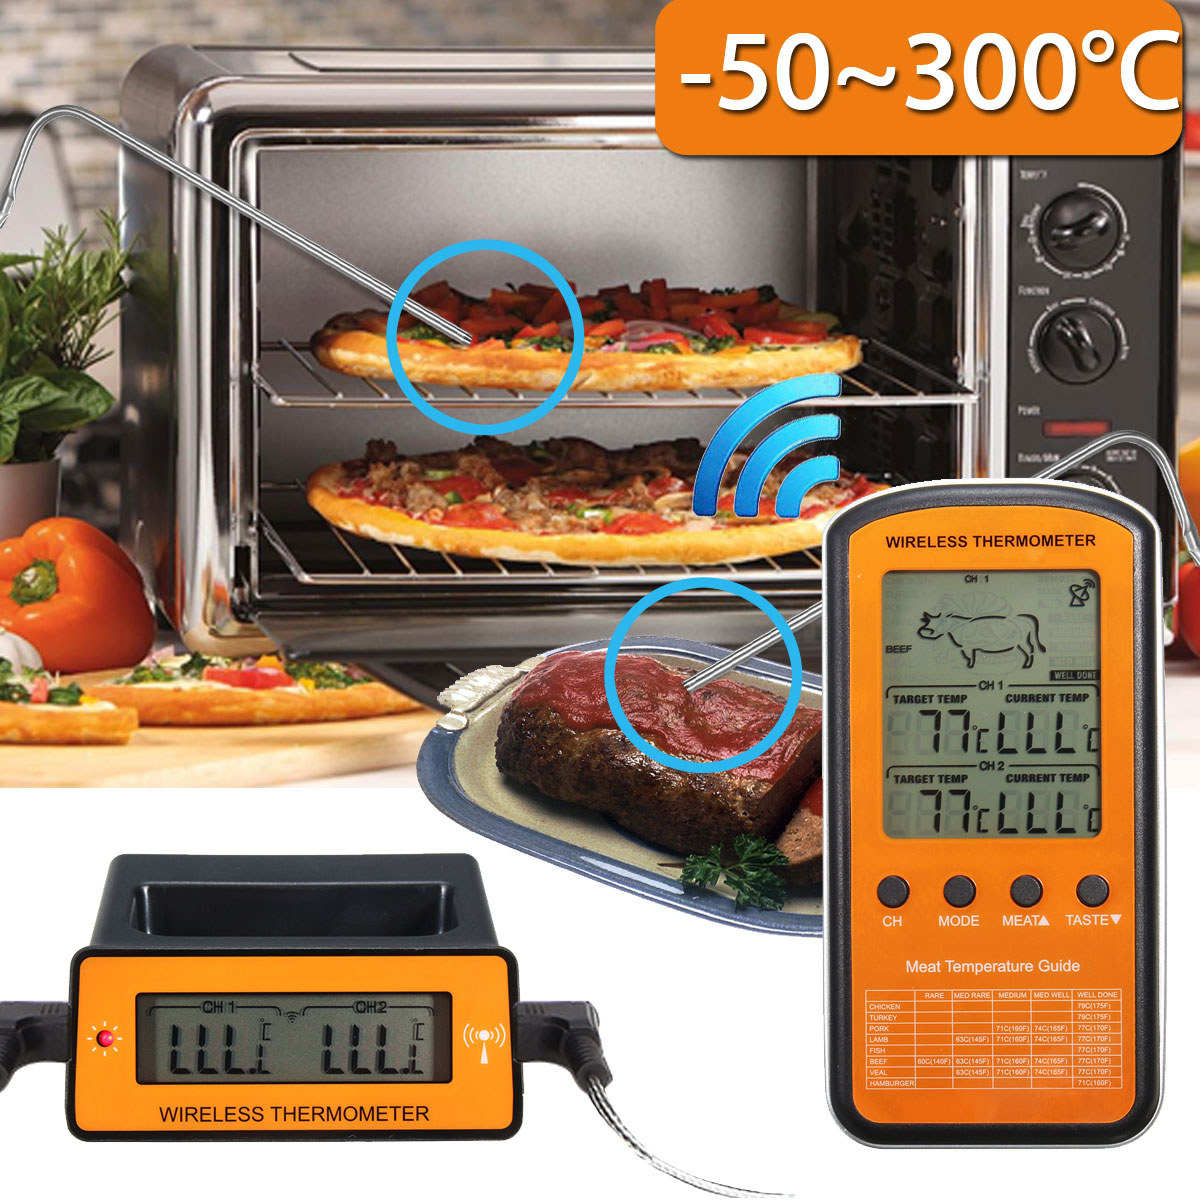 Wireless Remote LCD Digital Cooking Food Meat Thermometer with Dual Probe for Two Separate Parts Suitable for BBQ, Oven, Smoker, Candy, Meat, Food, Liquid, Milk